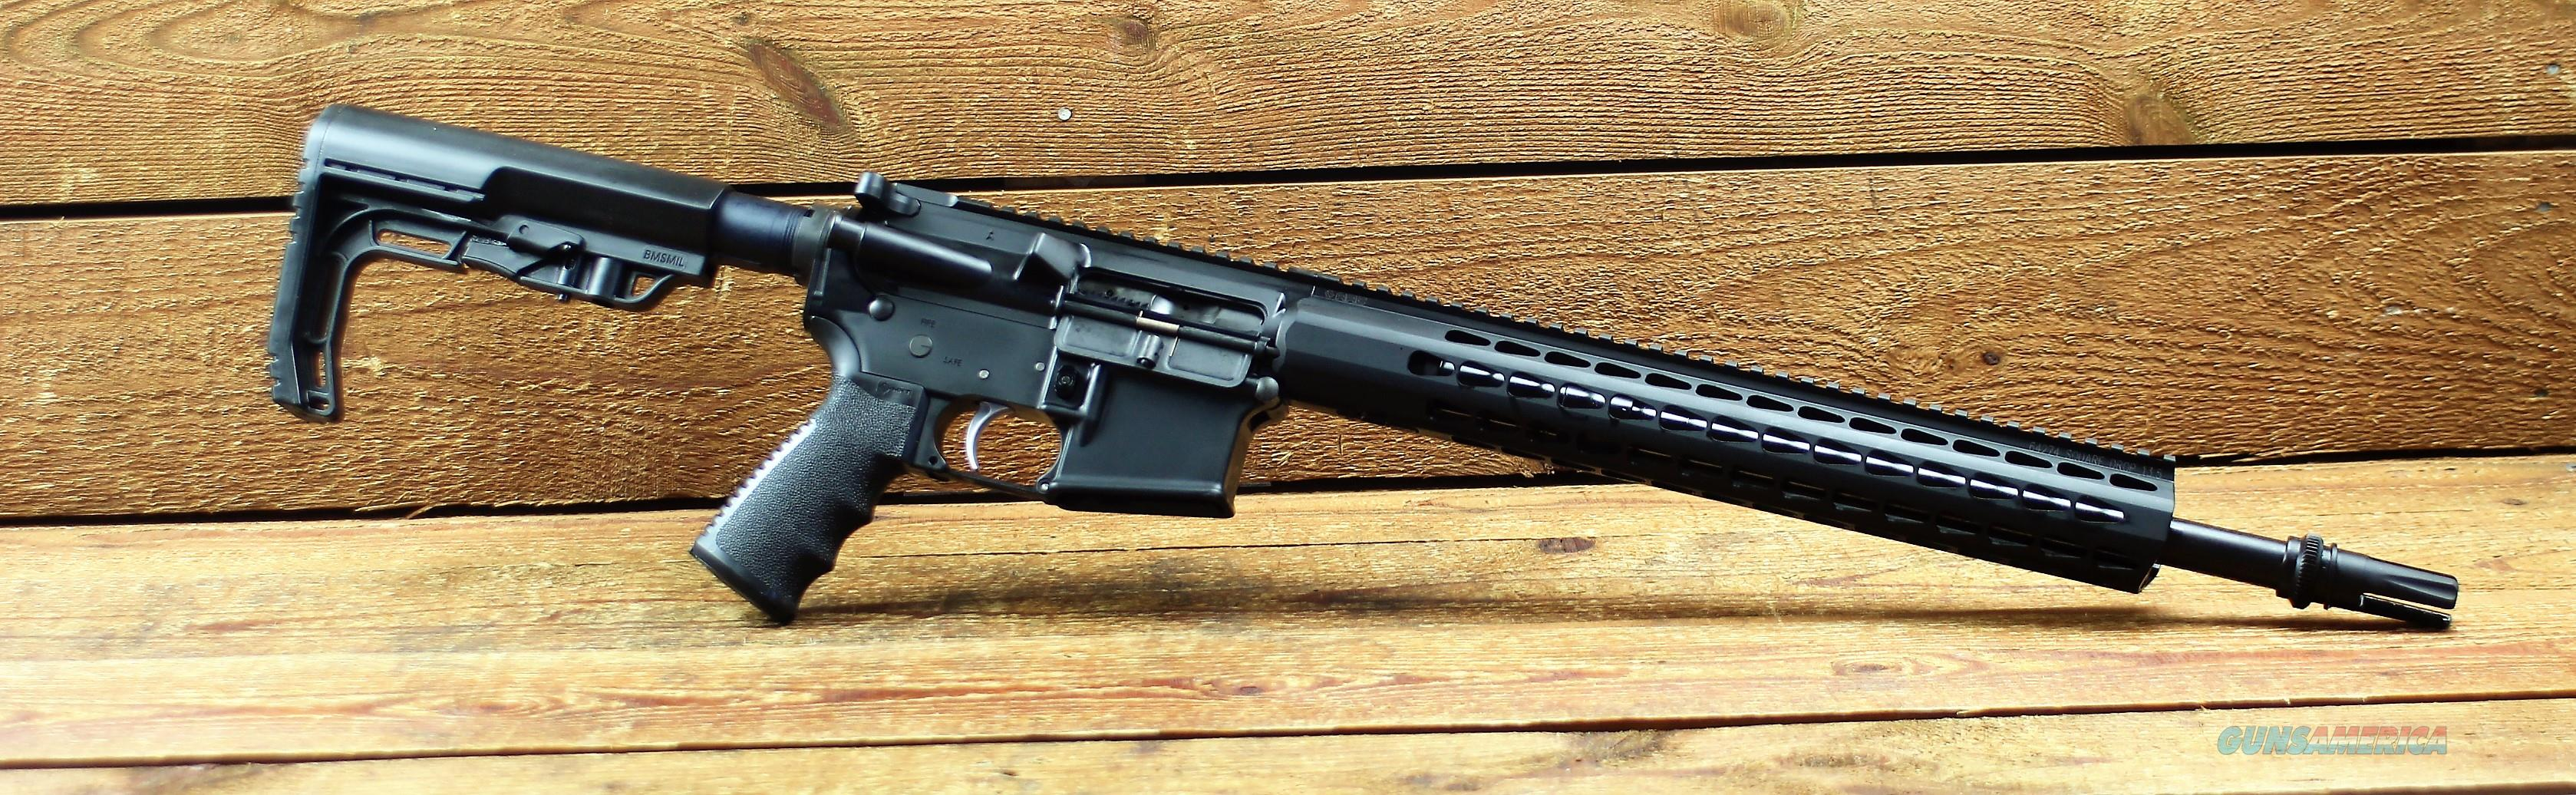 """$83  EASY PAY  BUSHMASTER MINIMALIST Tactical  AR15 Firepower Carbine .300 AAC BlackOut stock lightweight only 6 lbs 16"""" contour Chrome Moly Steel Barrel FNC treated   AR-15 5.5lb trigger pull  AR15 Twist Rate: 1:7  Mil-Spec 90924  Guns > Rifles > Bushmaster Rifles > Complete Rifles"""